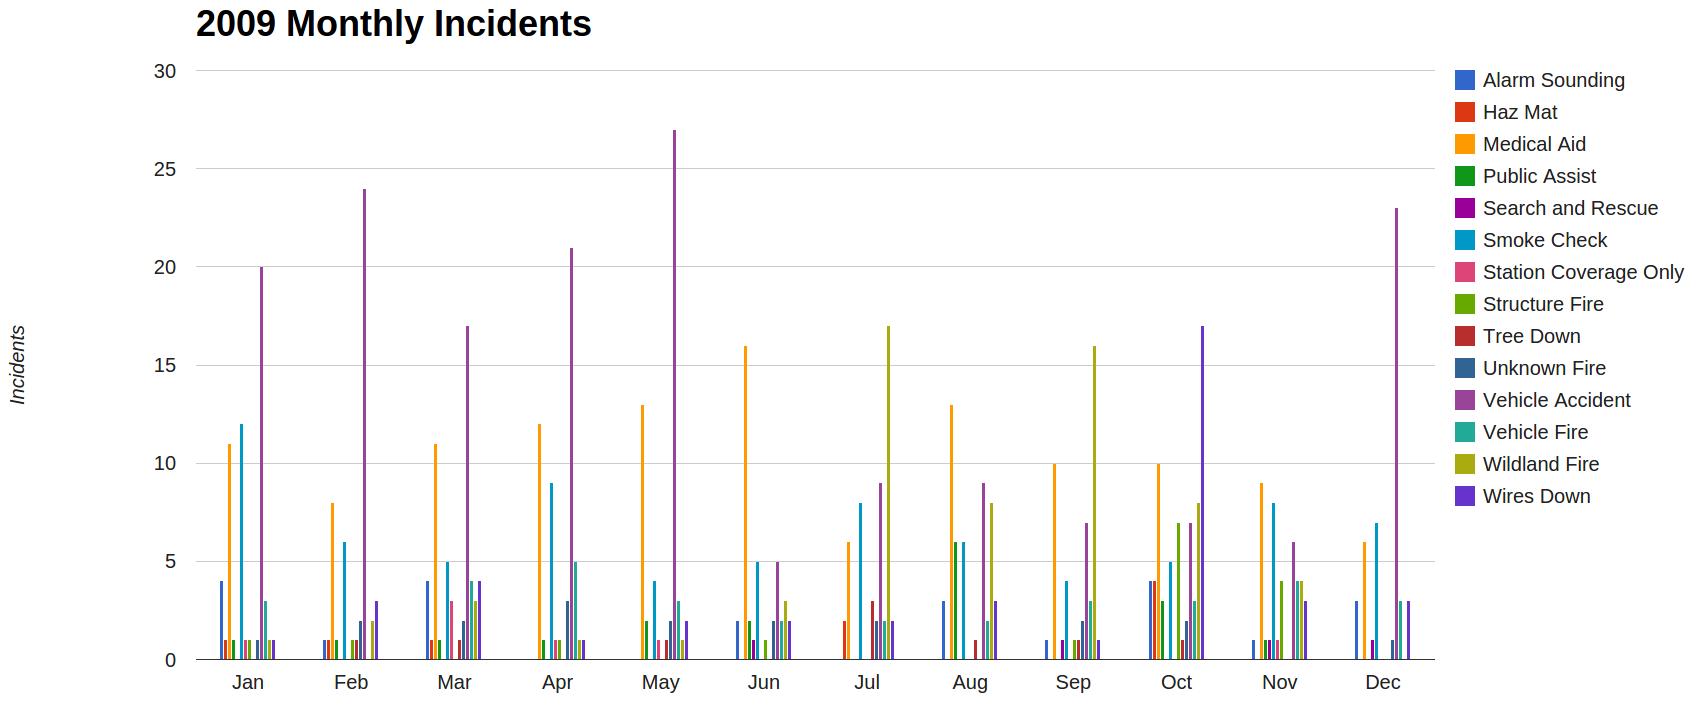 https://sites.google.com/a/lomaprietafire.org/loma-prieta-fire-rescue/home/incident-statistics/2009-incident-response-overview/2009_monthly_incidents.png?attredirects=0